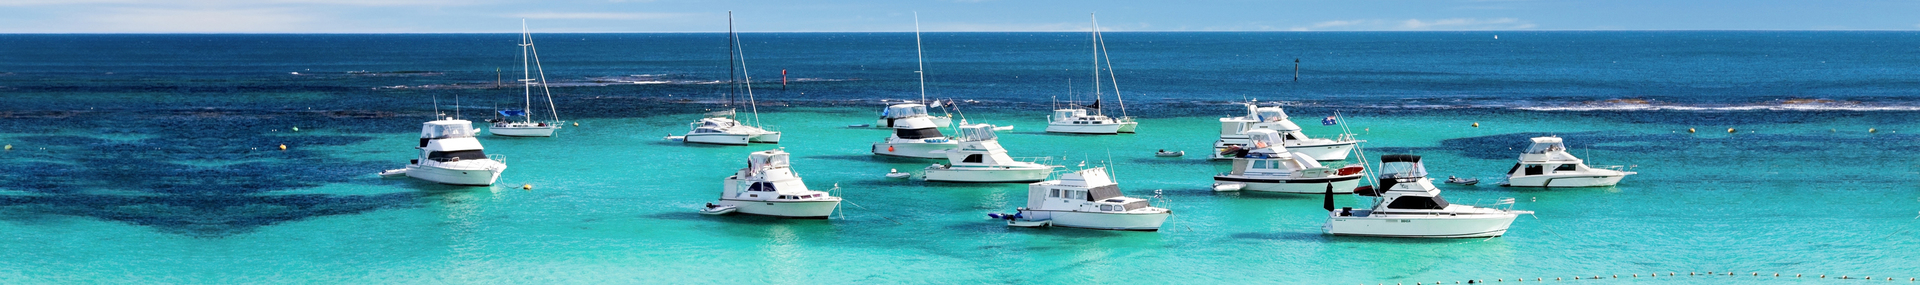 Boats at Rottnest Island